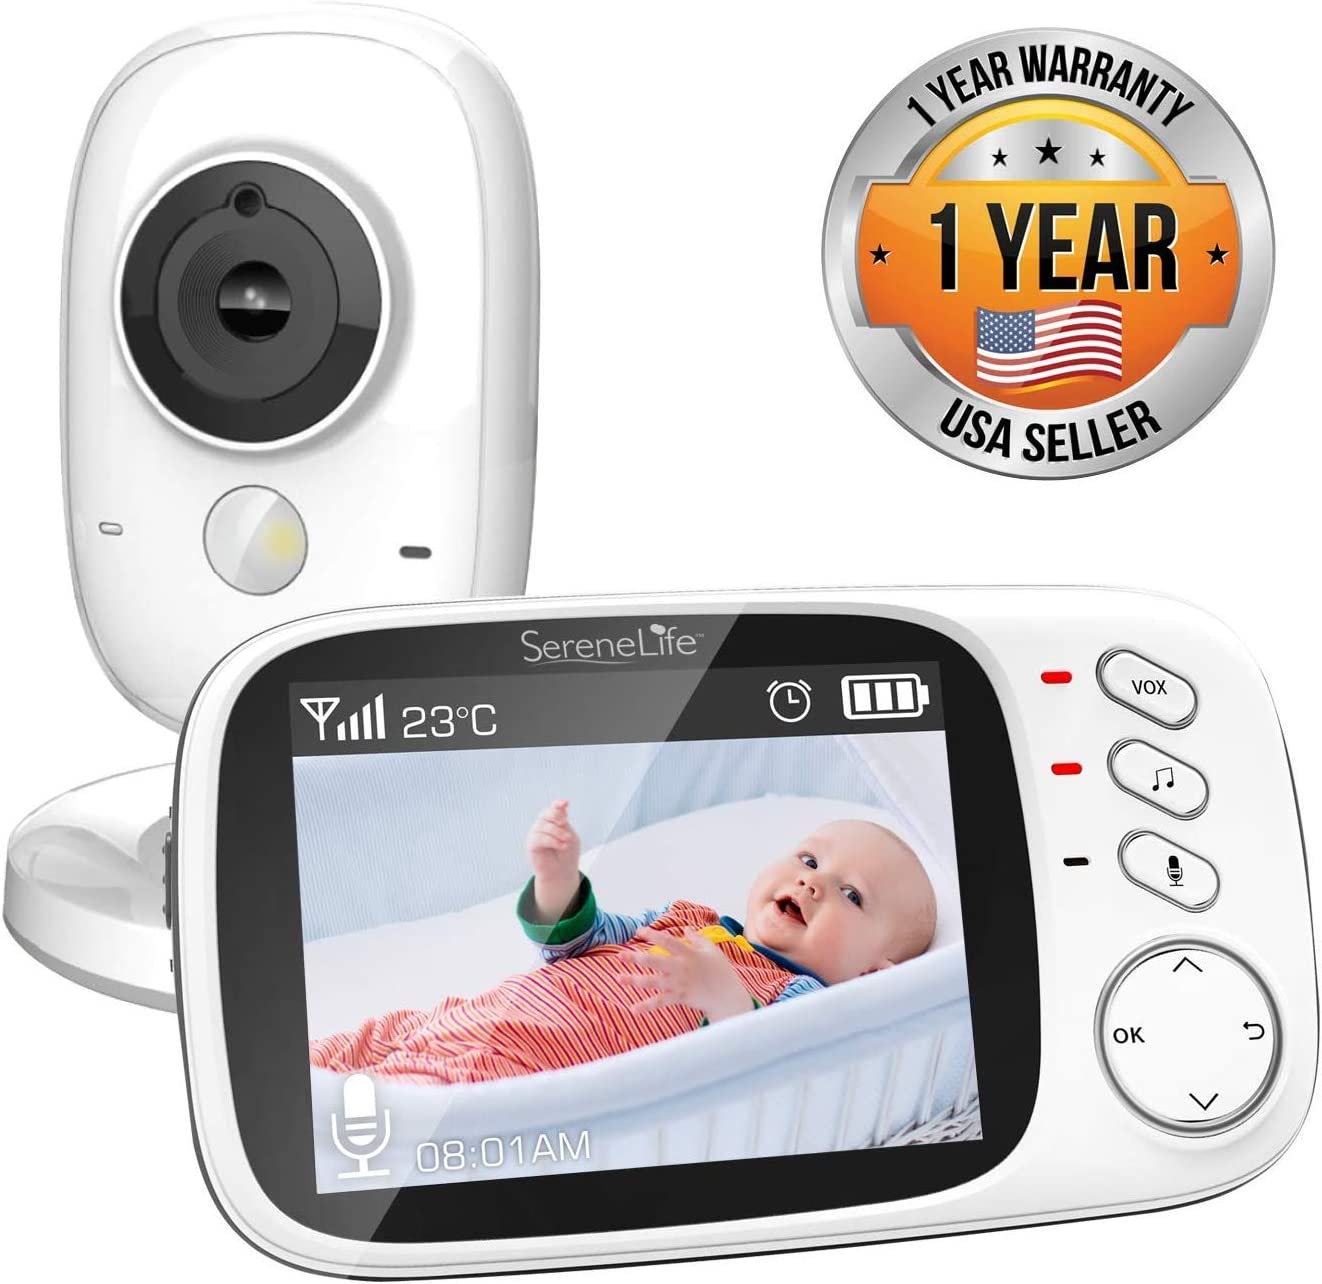 Video Baby Monitor Long Range – Upgraded 850 Wireless Range, Night Vision, Temperature Monitoring and Portable 2 Color Screen – Serenelife USA SLBCAM20